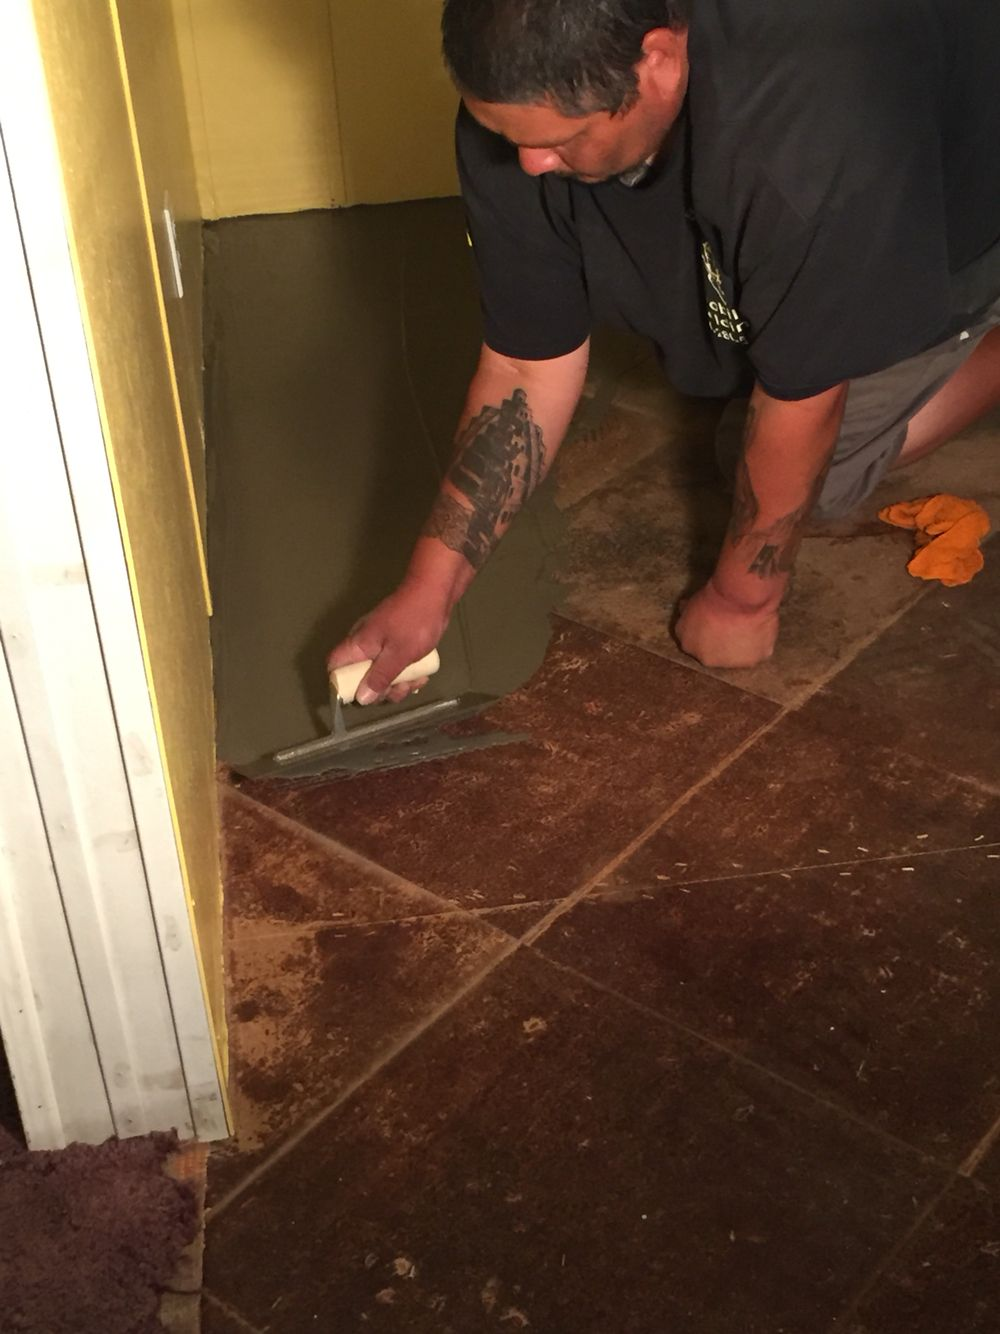 Self leveling mix to cover up glue on flooring that we cant remove self leveling mix to cover up glue on flooring that we cant remove dailygadgetfo Images